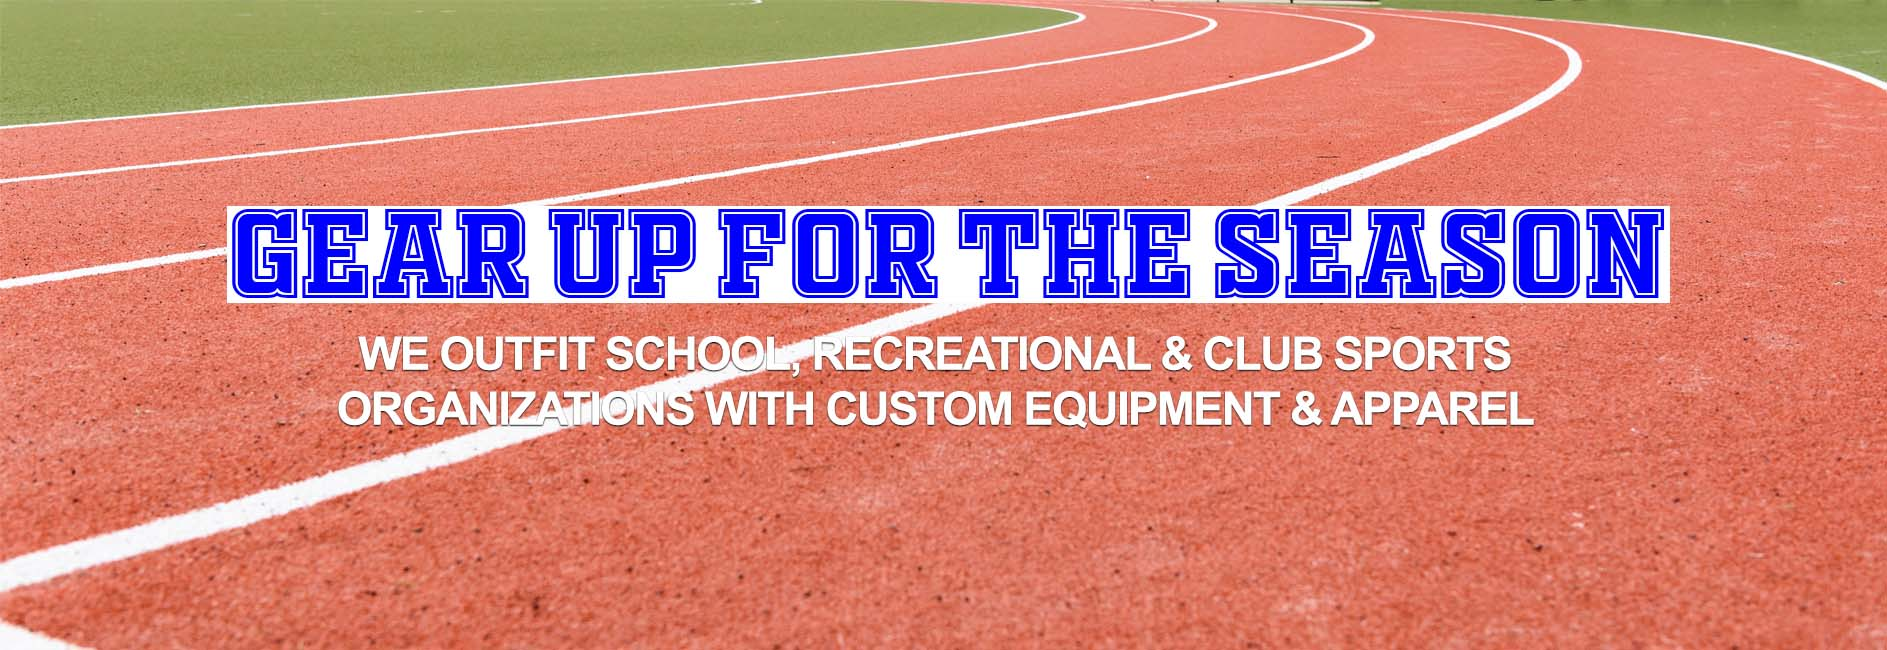 We outfit school, recreational, and club sports organizations